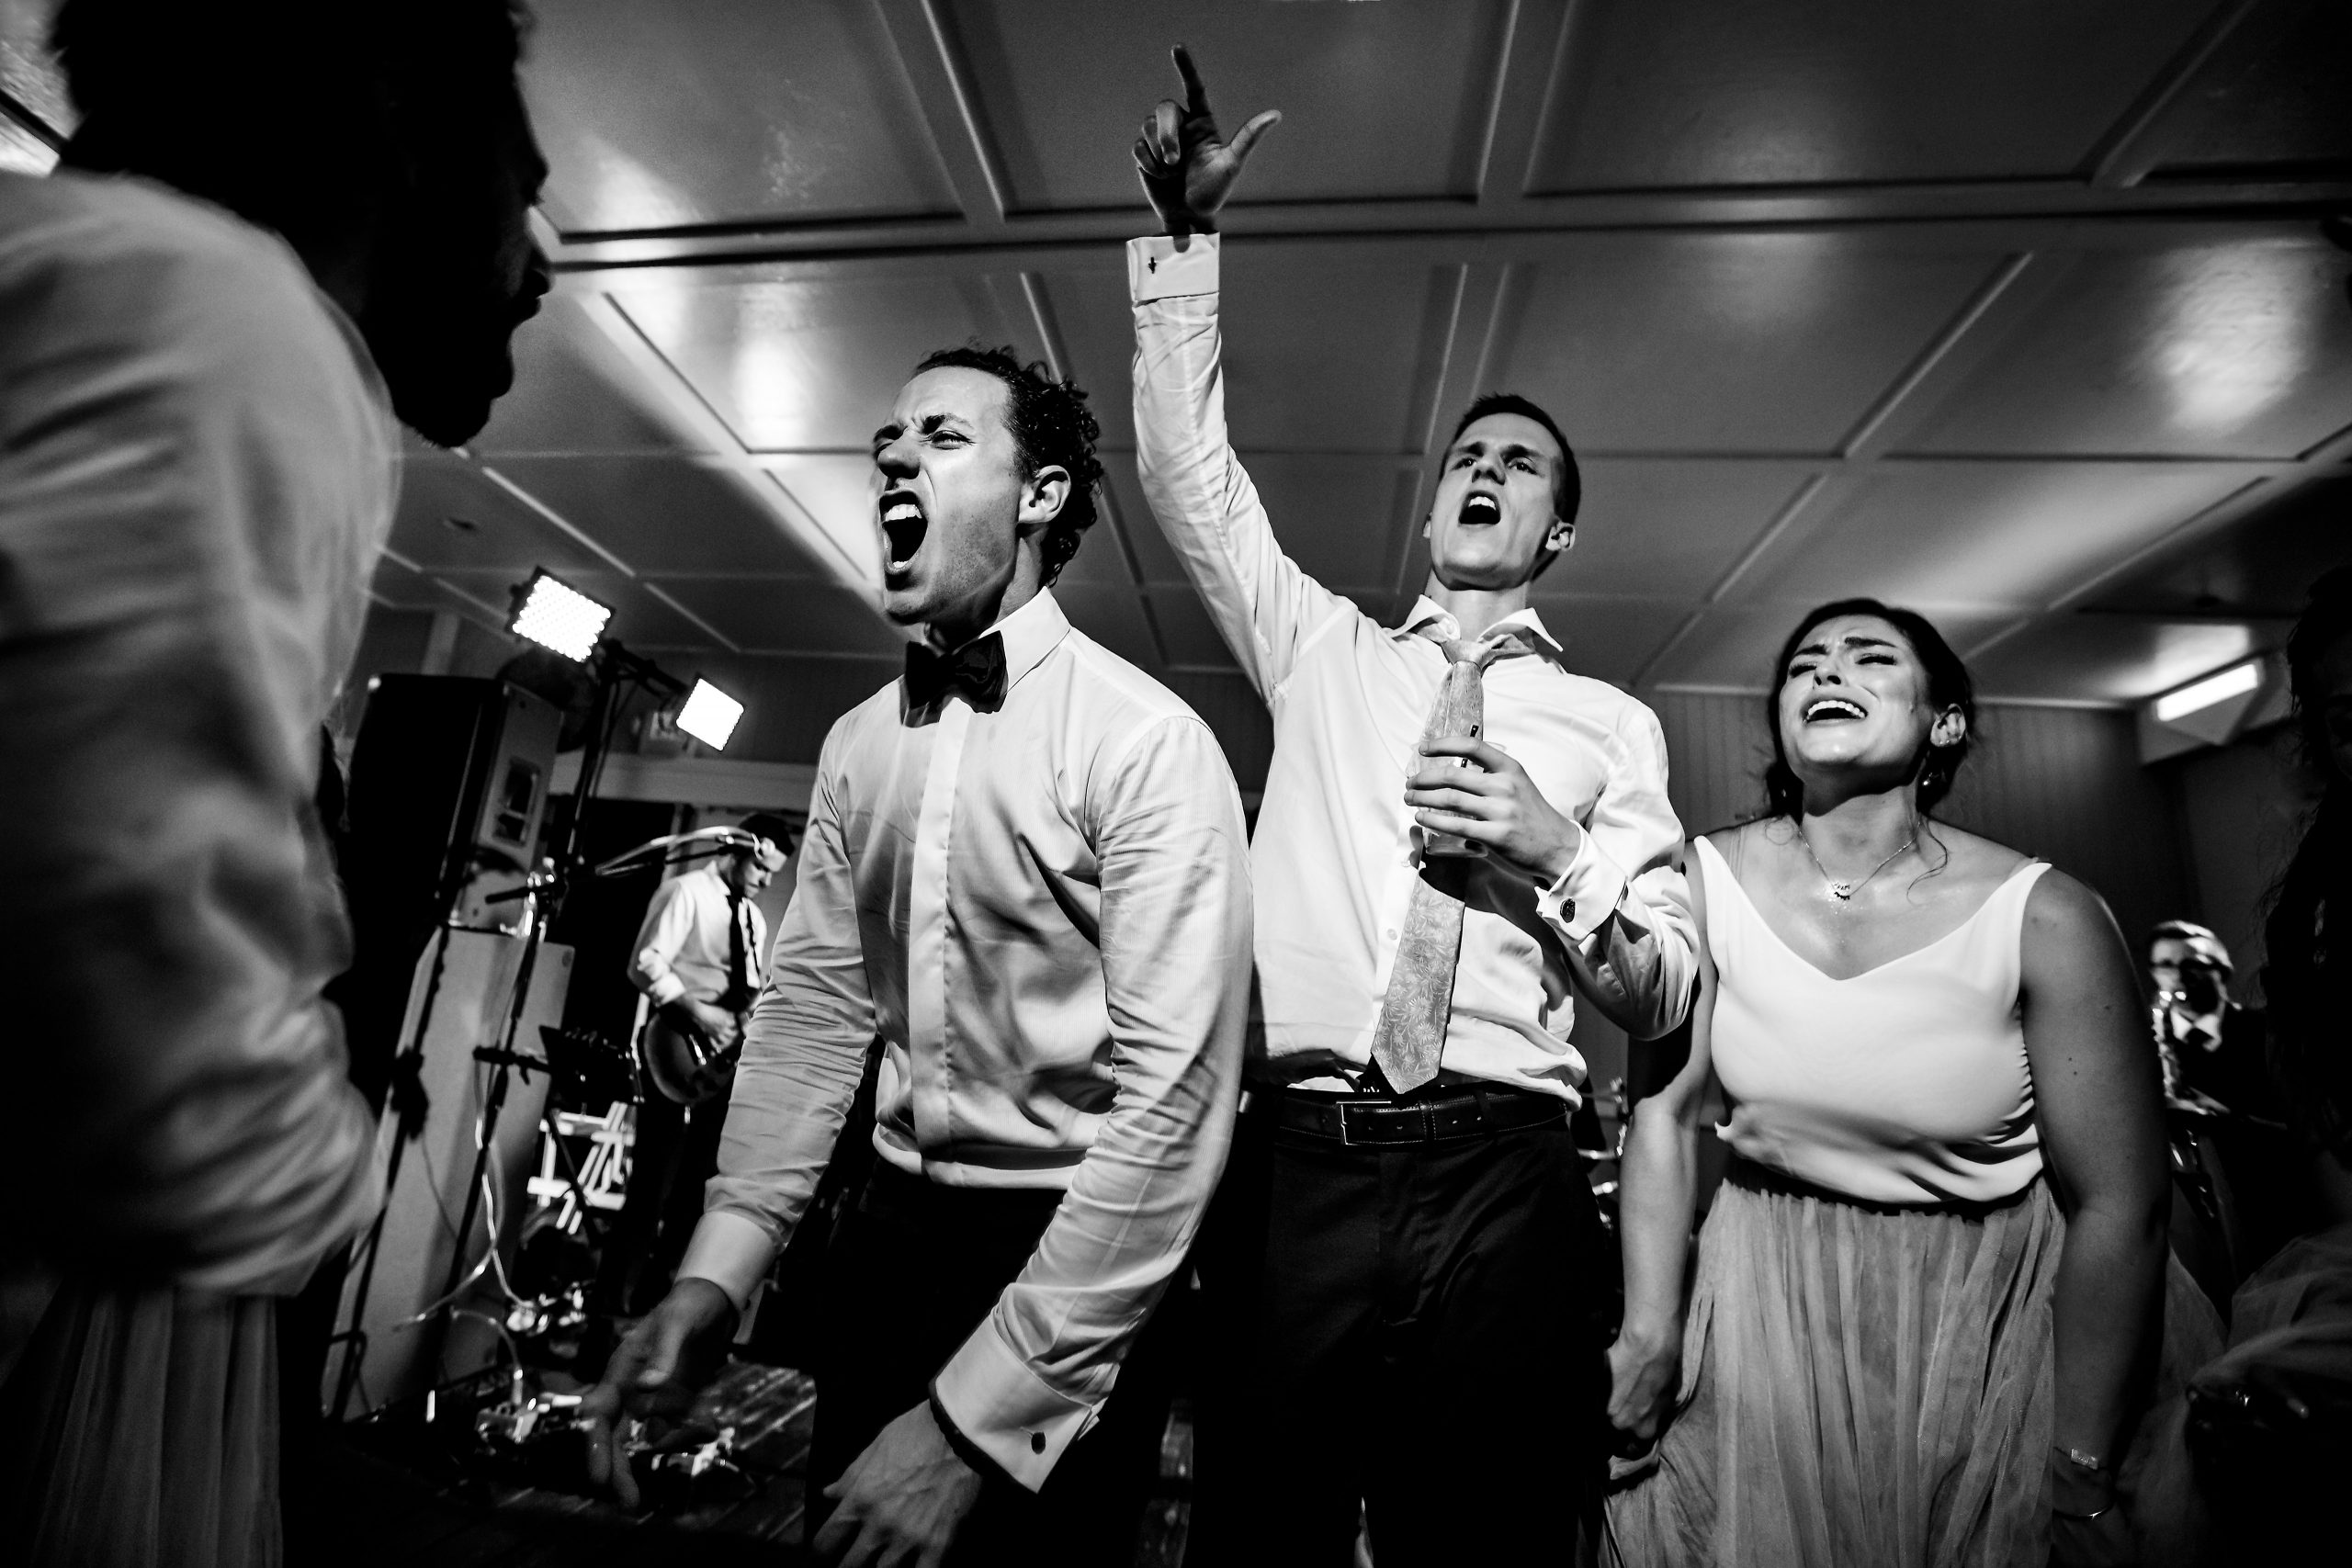 Groom sings with party guests